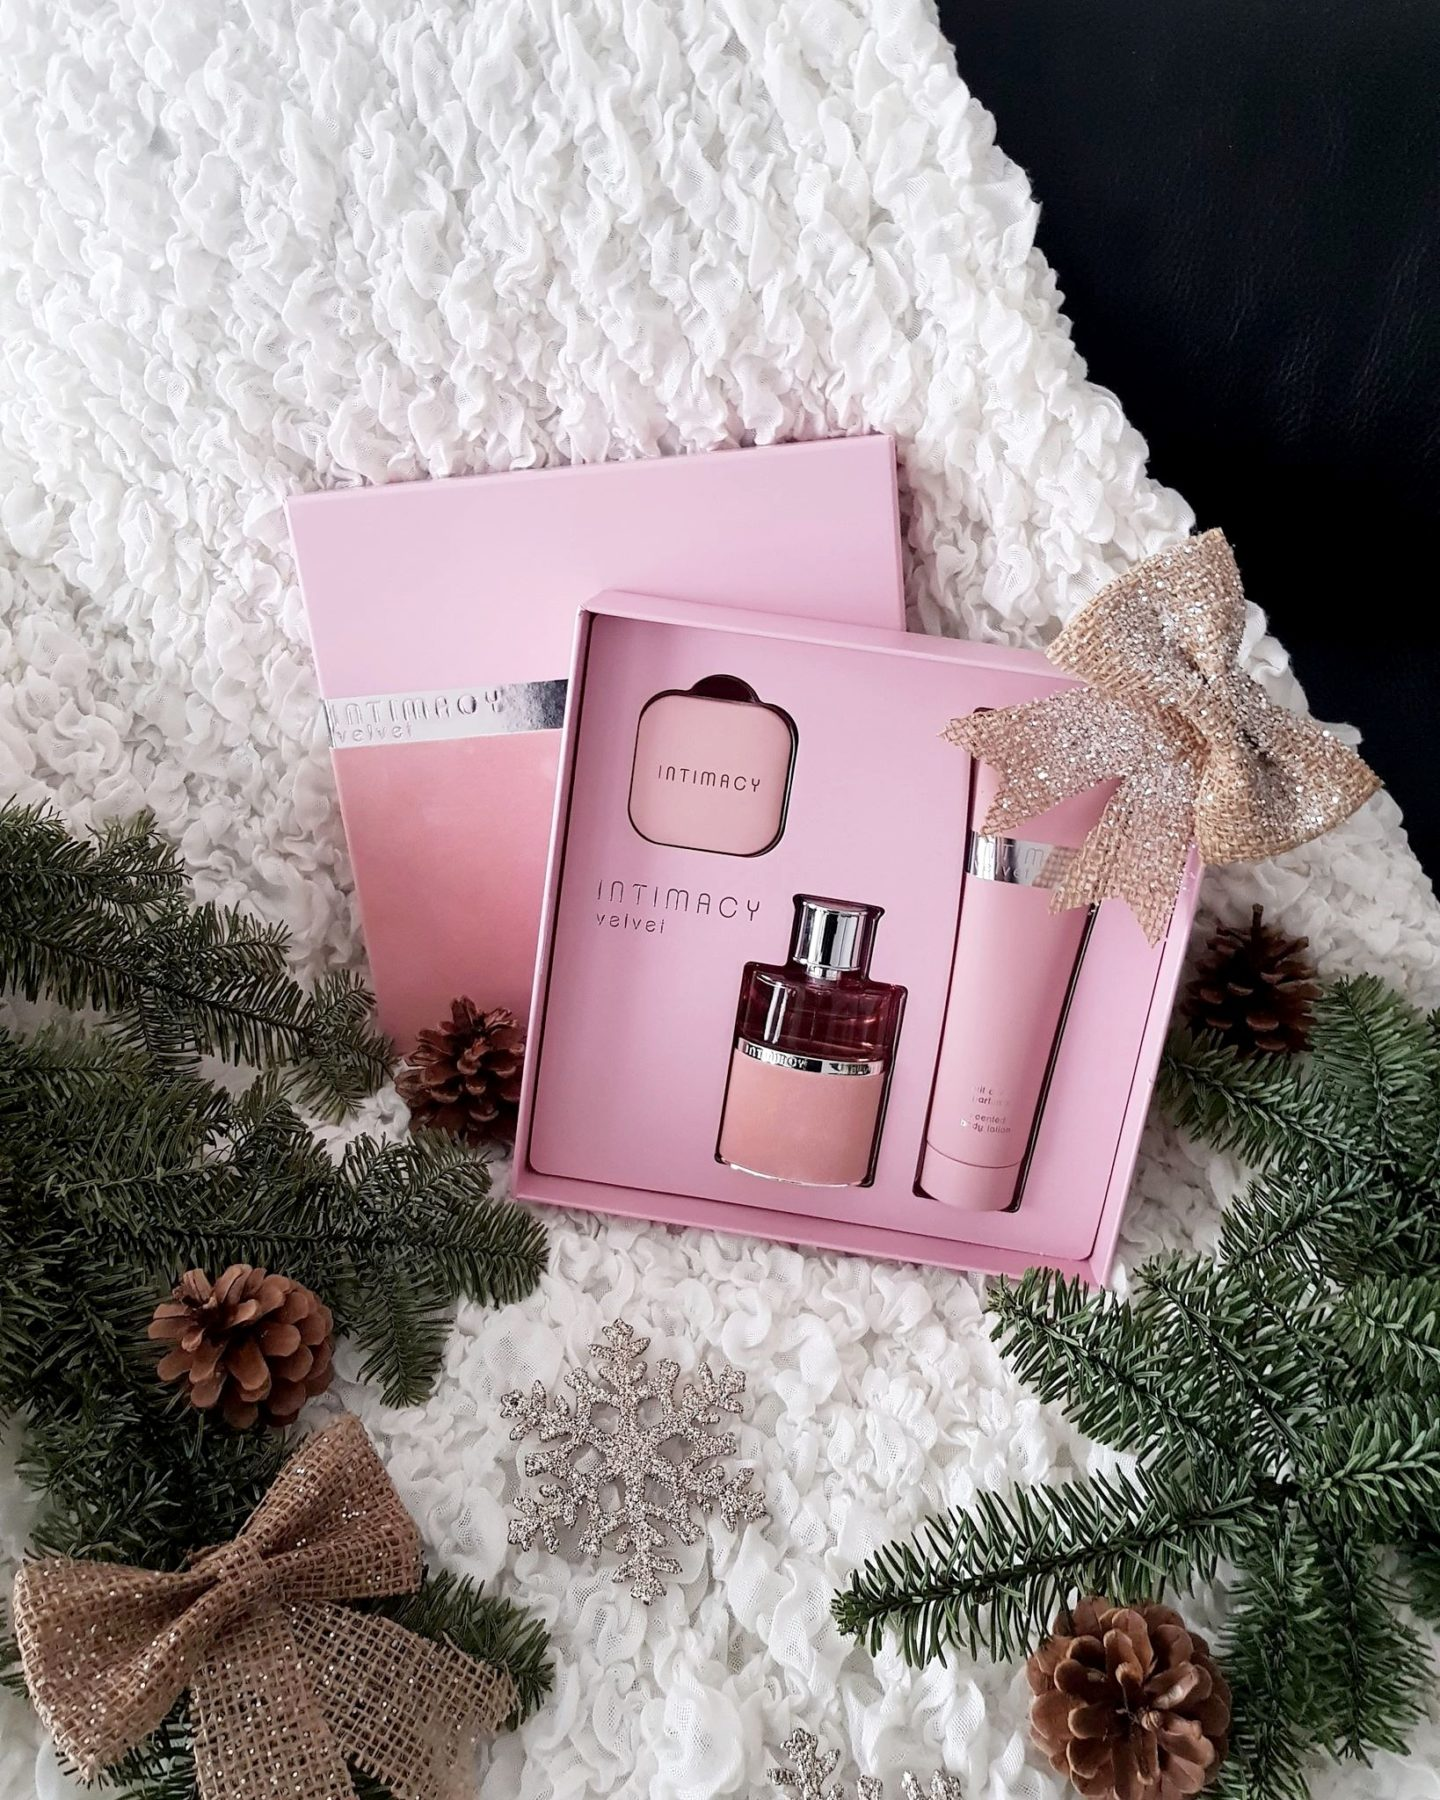 coffret velvet intimacy ici paris xl